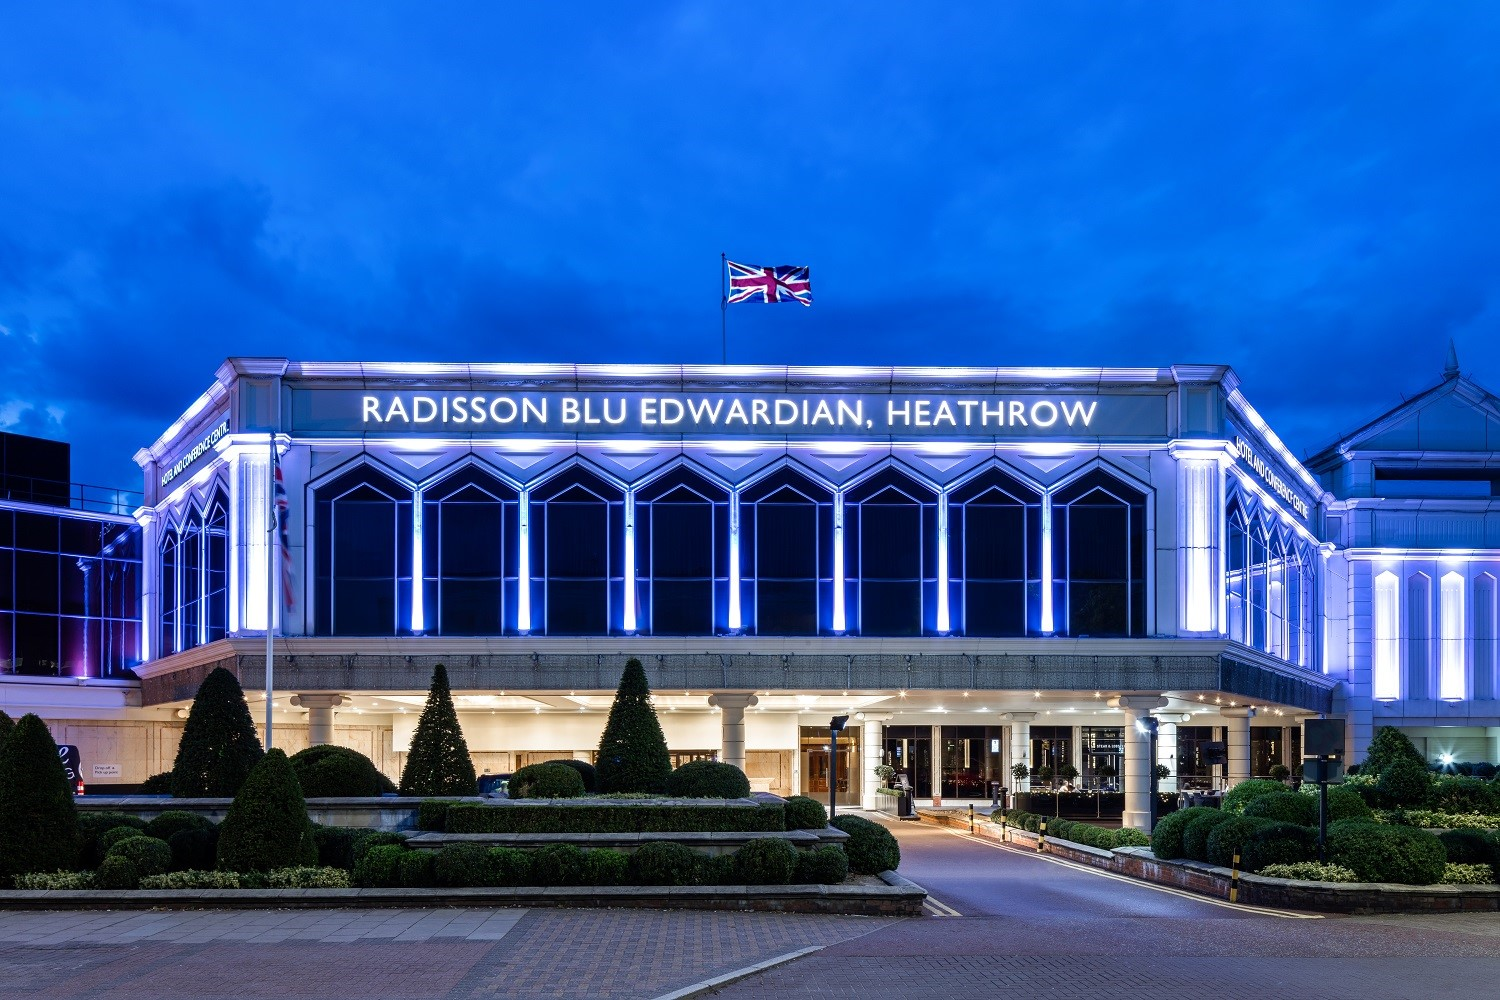 Picture of Radisson Blu Edwardian Heathrow